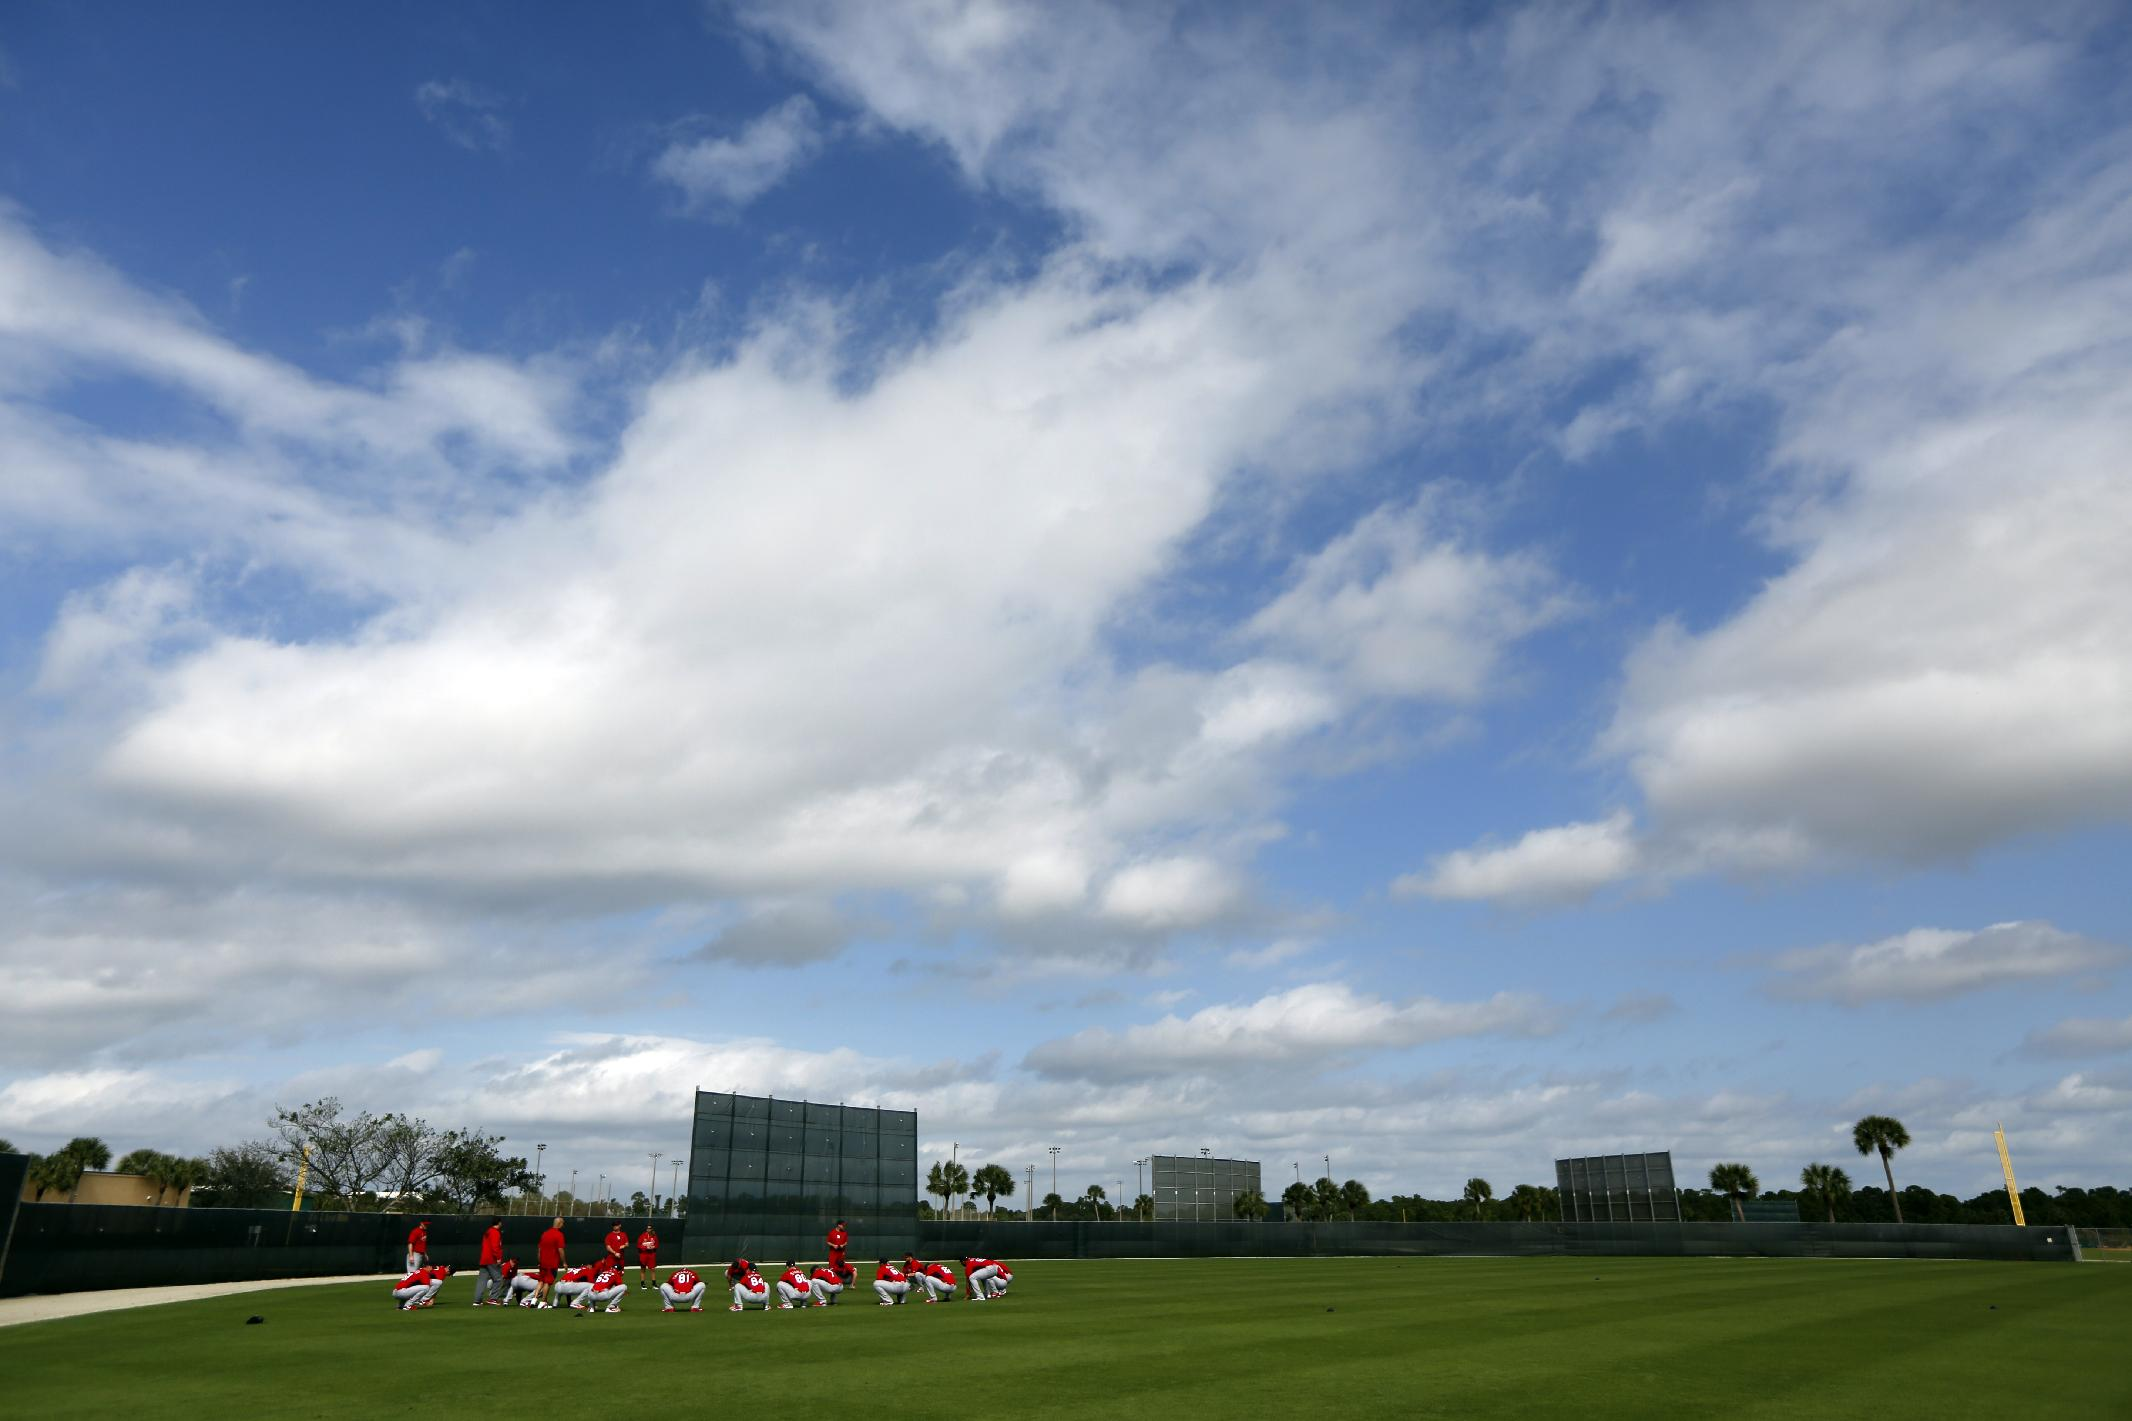 Members of the St. Louis Cardinals warm up at the start of the first official spring training baseball practice for the team's pitchers and catchers Thursday, Feb. 13, 2014, in Jupiter, Fla